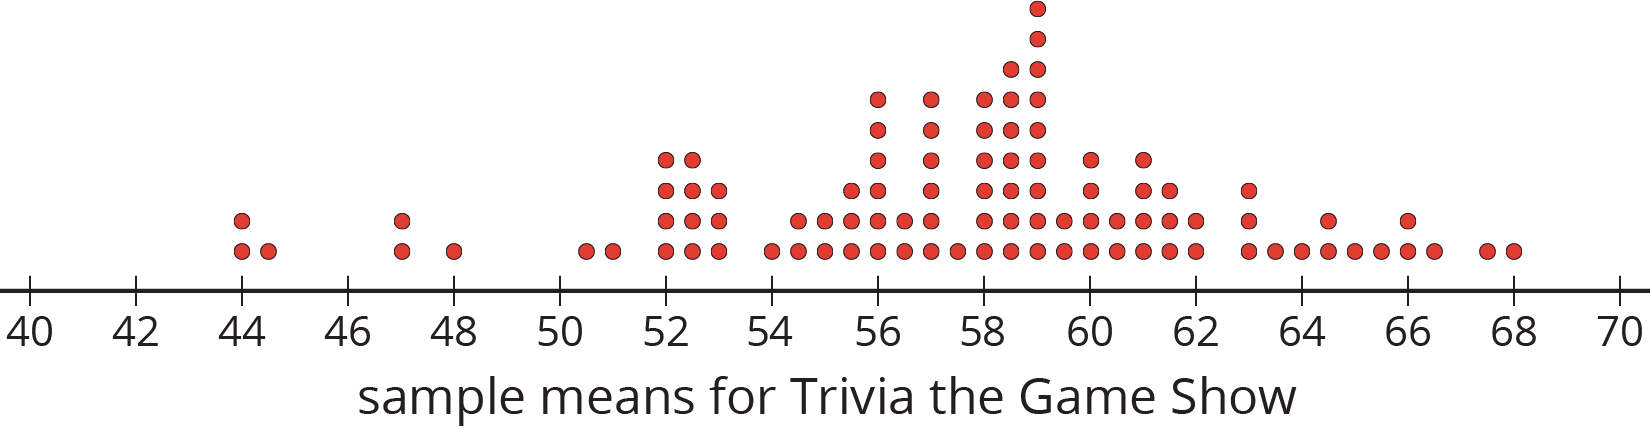 """A dot plot for """"sample means for Trivia the Game Show"""" with the numbers 40 through 70, in increments of 2, is indicated. The data are as follows:  44 years old, 2 dots. 44 point 5 years old, 1 dot. 47 years old, 2 dots. 48 years old, 1 dot. 50 point 5 years old, 1 dot. 51 years old, 1 dot. 52 years old, 4 dots. 52 point 5 years old, 4 dots. 53 years old, 3 dots. 54 years old, 1 dot. 54 point 5 years old, 2 dots. 55 years old, 2 dots. 55 point 5 years old, 3 dots. 56 years old, 6 dots. 56 point 5 years old, 2 dots. 57 years old, 6 dots. 57 point 5 years old, 1 dot. 58 years old, 6 dots. 58 point 5 years old, 7 dots. 59 years old, 9 dots. 59 point 5 years old, 2 dots. 60 years old, 4 dots. 60 point 5 years old, 2 dots. 61 years old, 4 dots. 61 point 5 years old, 3 dots. 62 years old, 2 dots. 63 years old, 3 dots. 63 point 5 years old, 1 dot. 64 years old, 1 dot. 64 point 5 years old, 2 dots. 65 years old, 1 dot. 65 point 5 years old, 1 dot. 66 years old, 2 dots. 66 point 5 years old, 1 dot. 67 point 5 years old, 1 dot. 68 years old, 1 dot."""